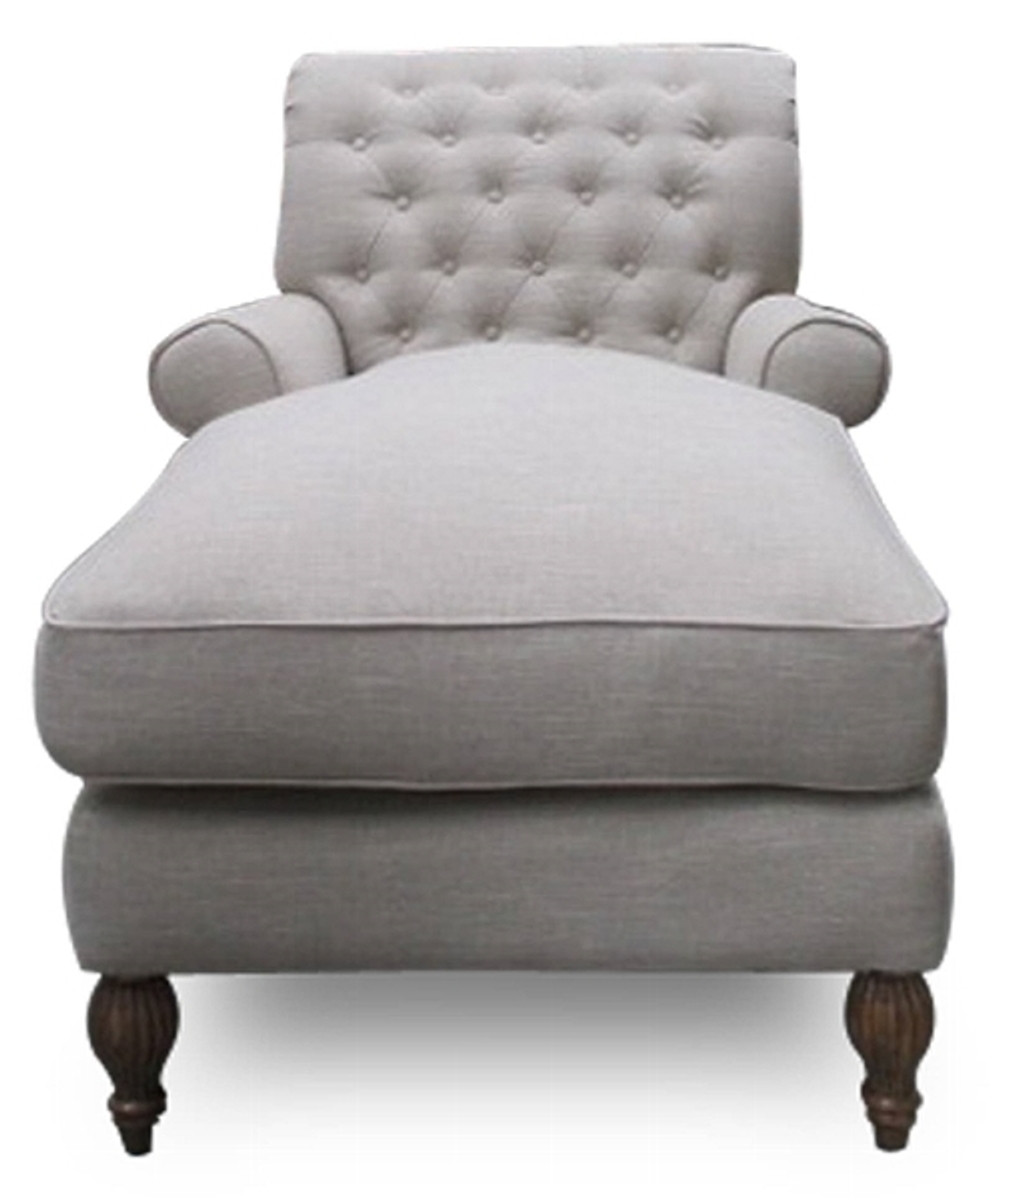 Casa Padrino Chesterfield Lounge Armchair Natural Colors 93 X 149 X